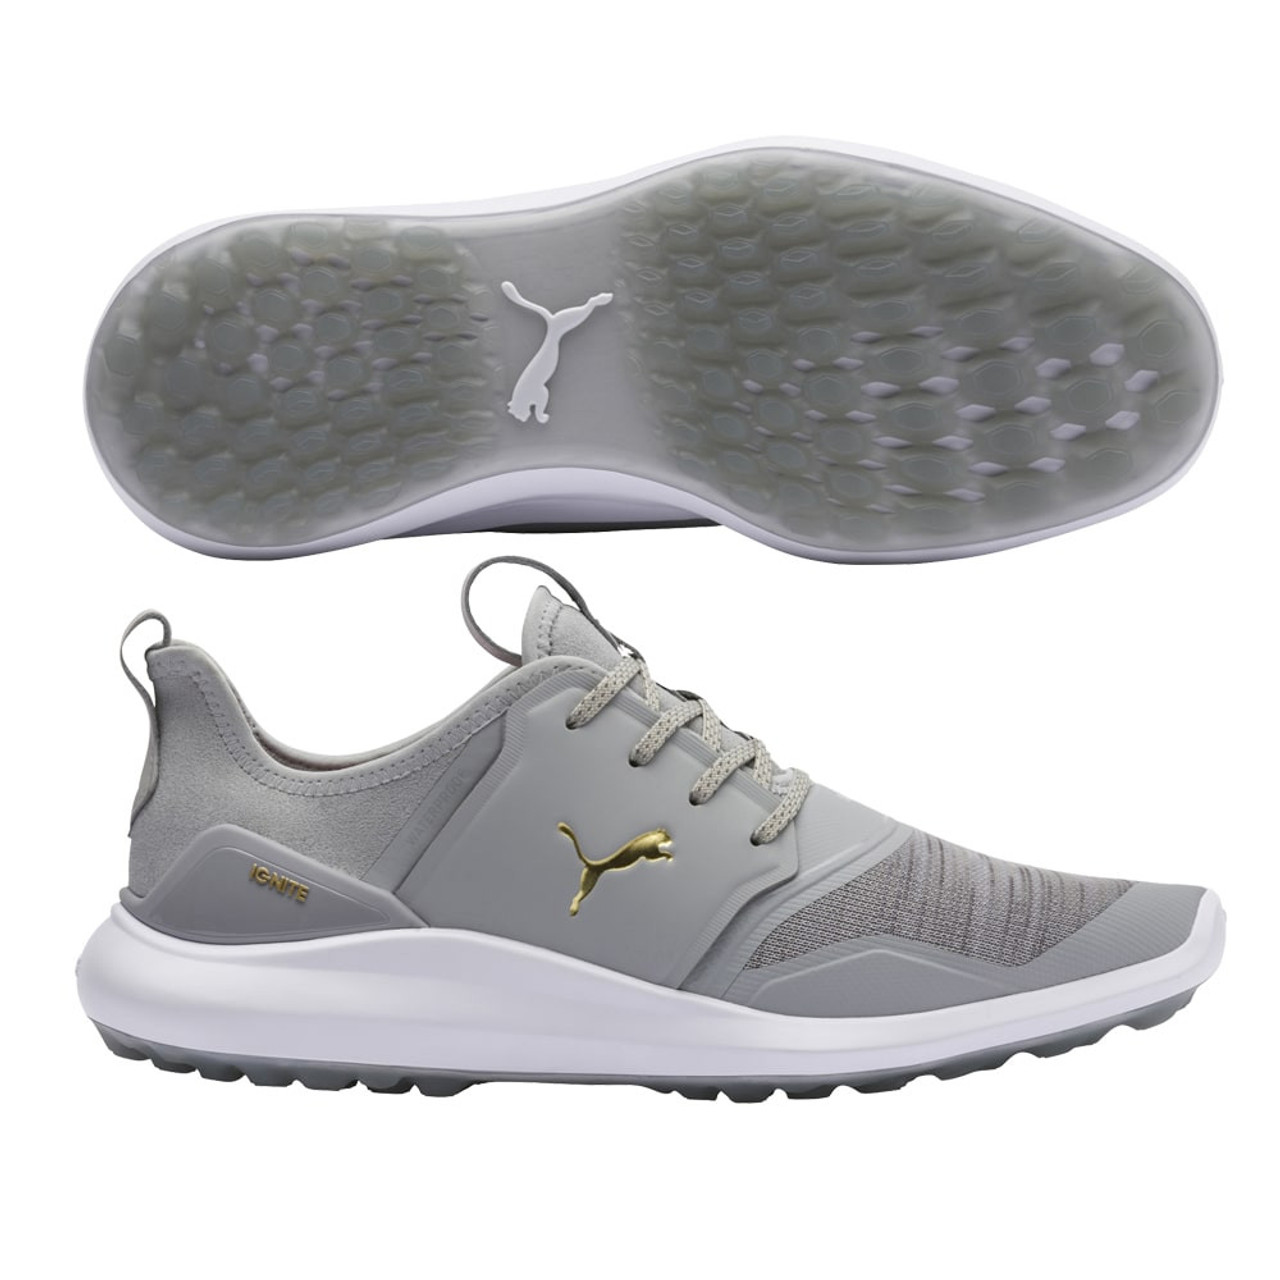 Puma IGNITE NXT Lace Golf Shoes - High Rise / Puma Team Gold / Puma White